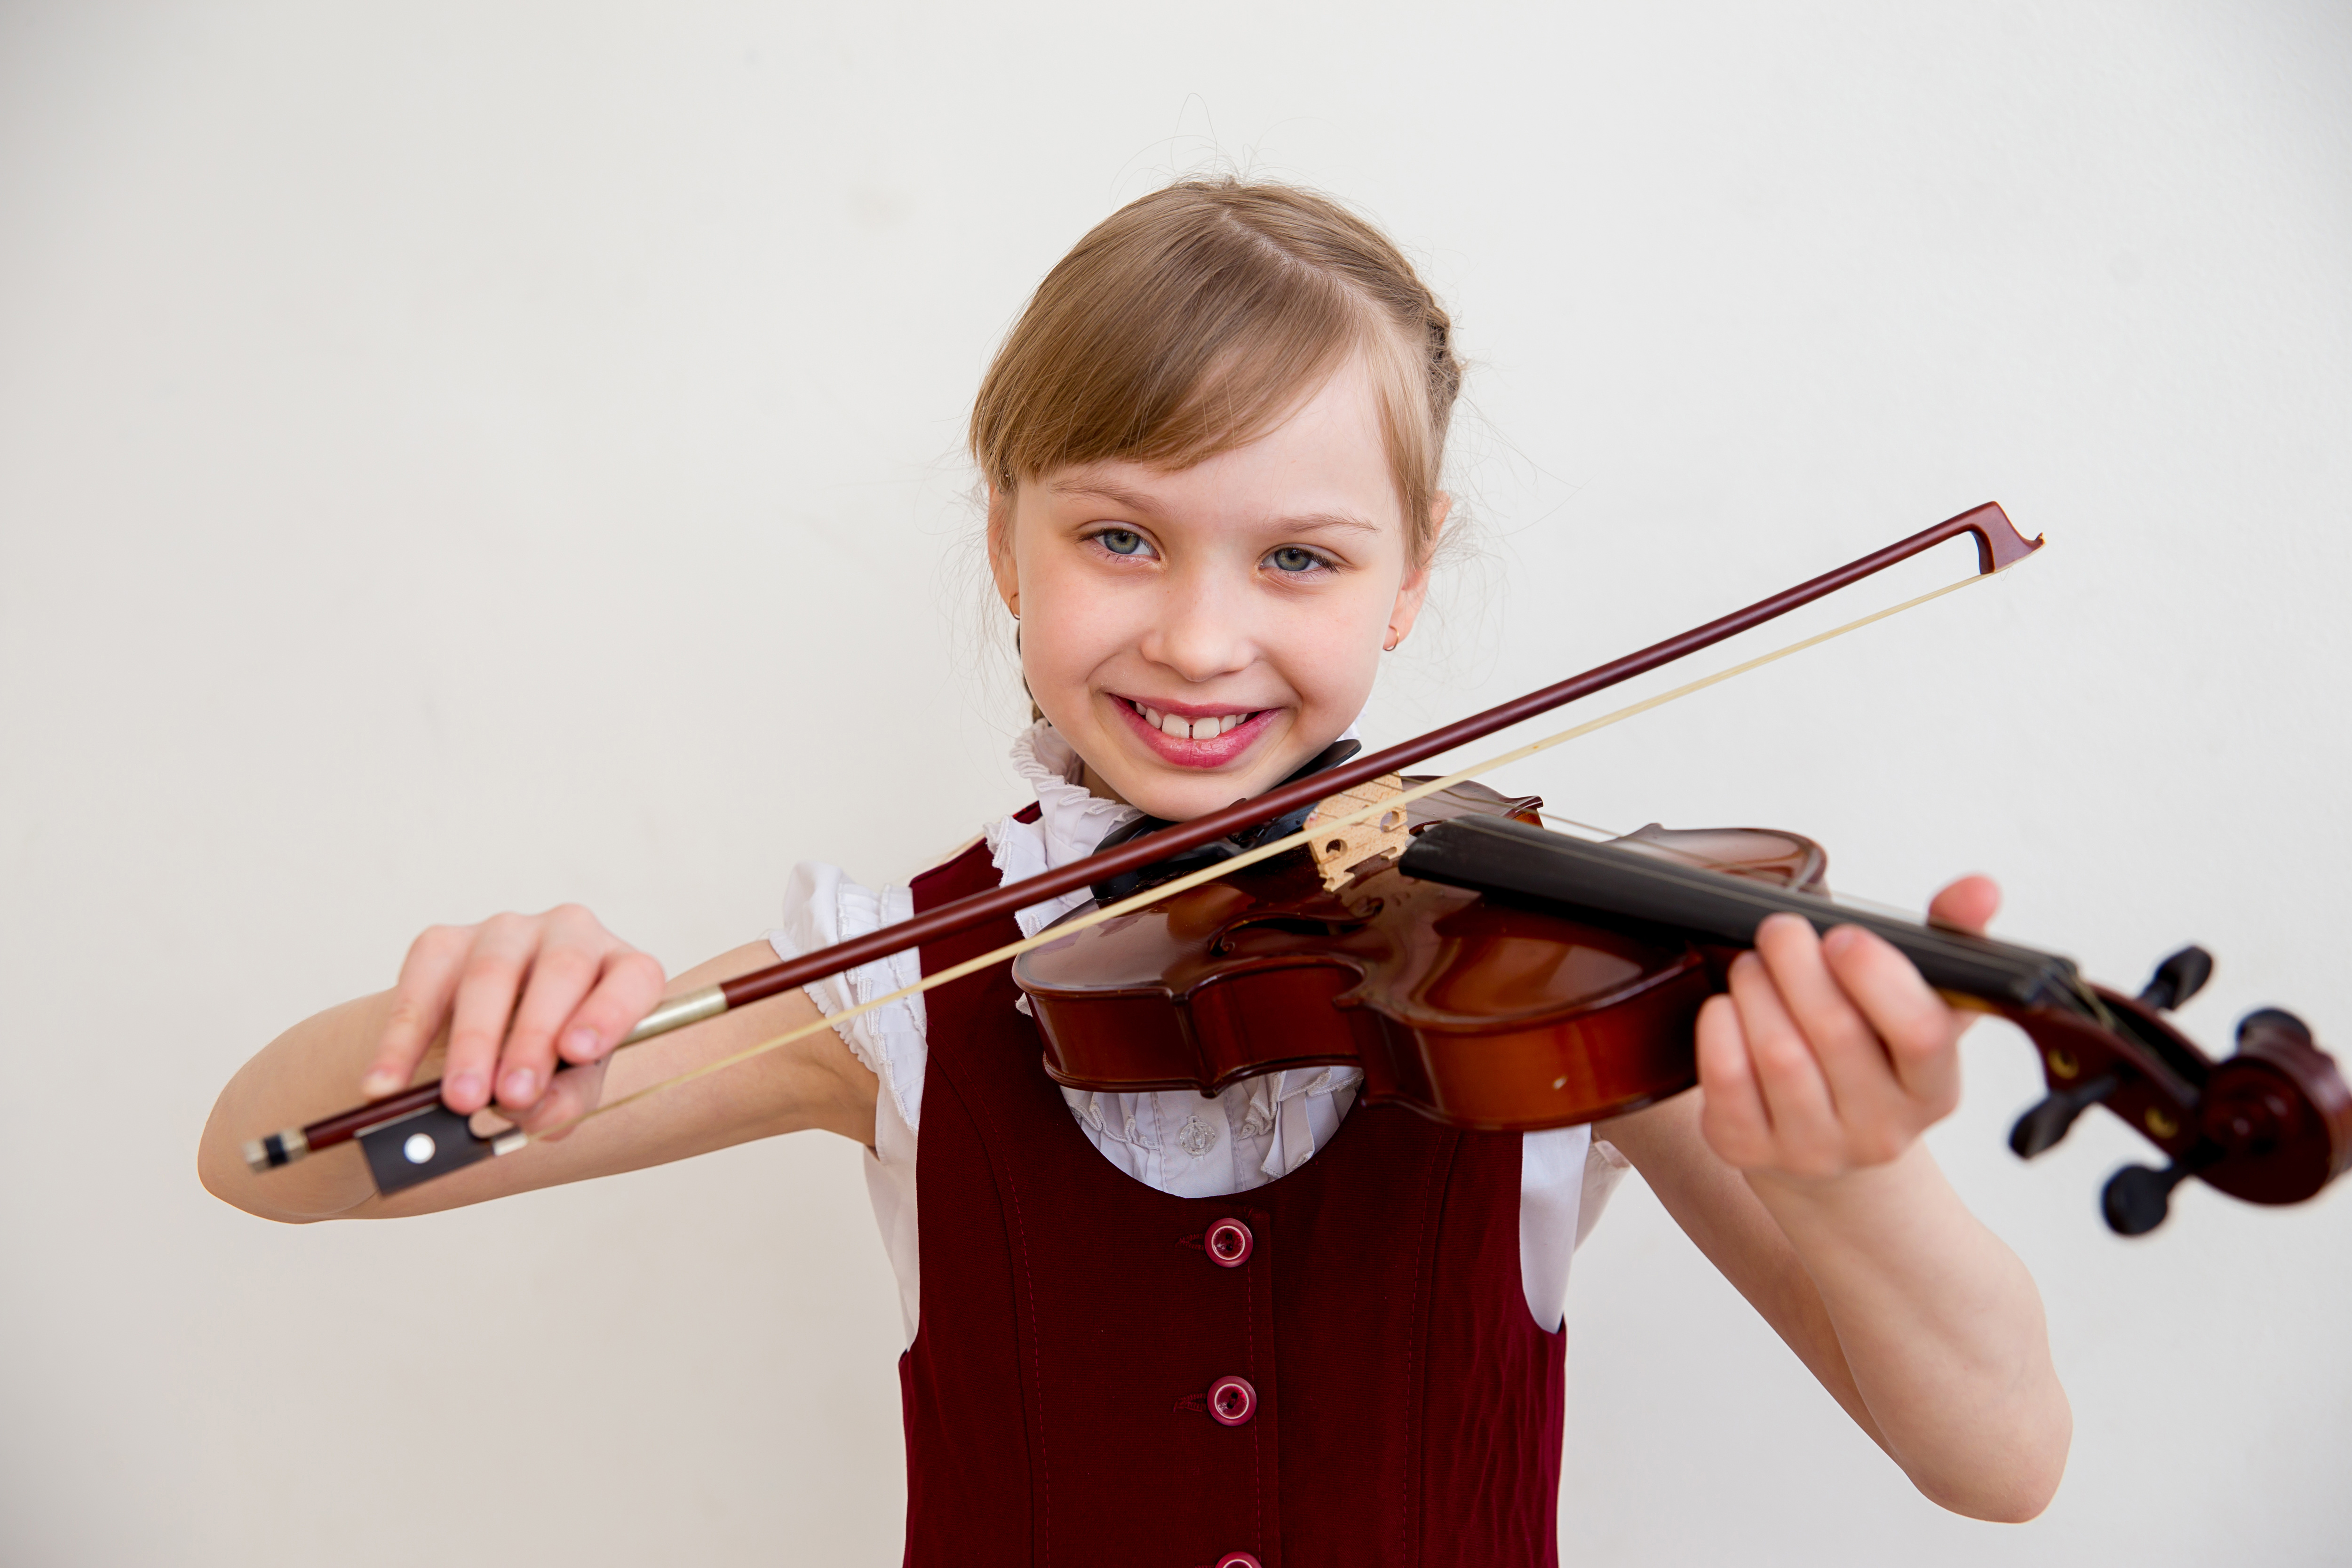 violin lessons near me for kids and adults in hendersonville nc